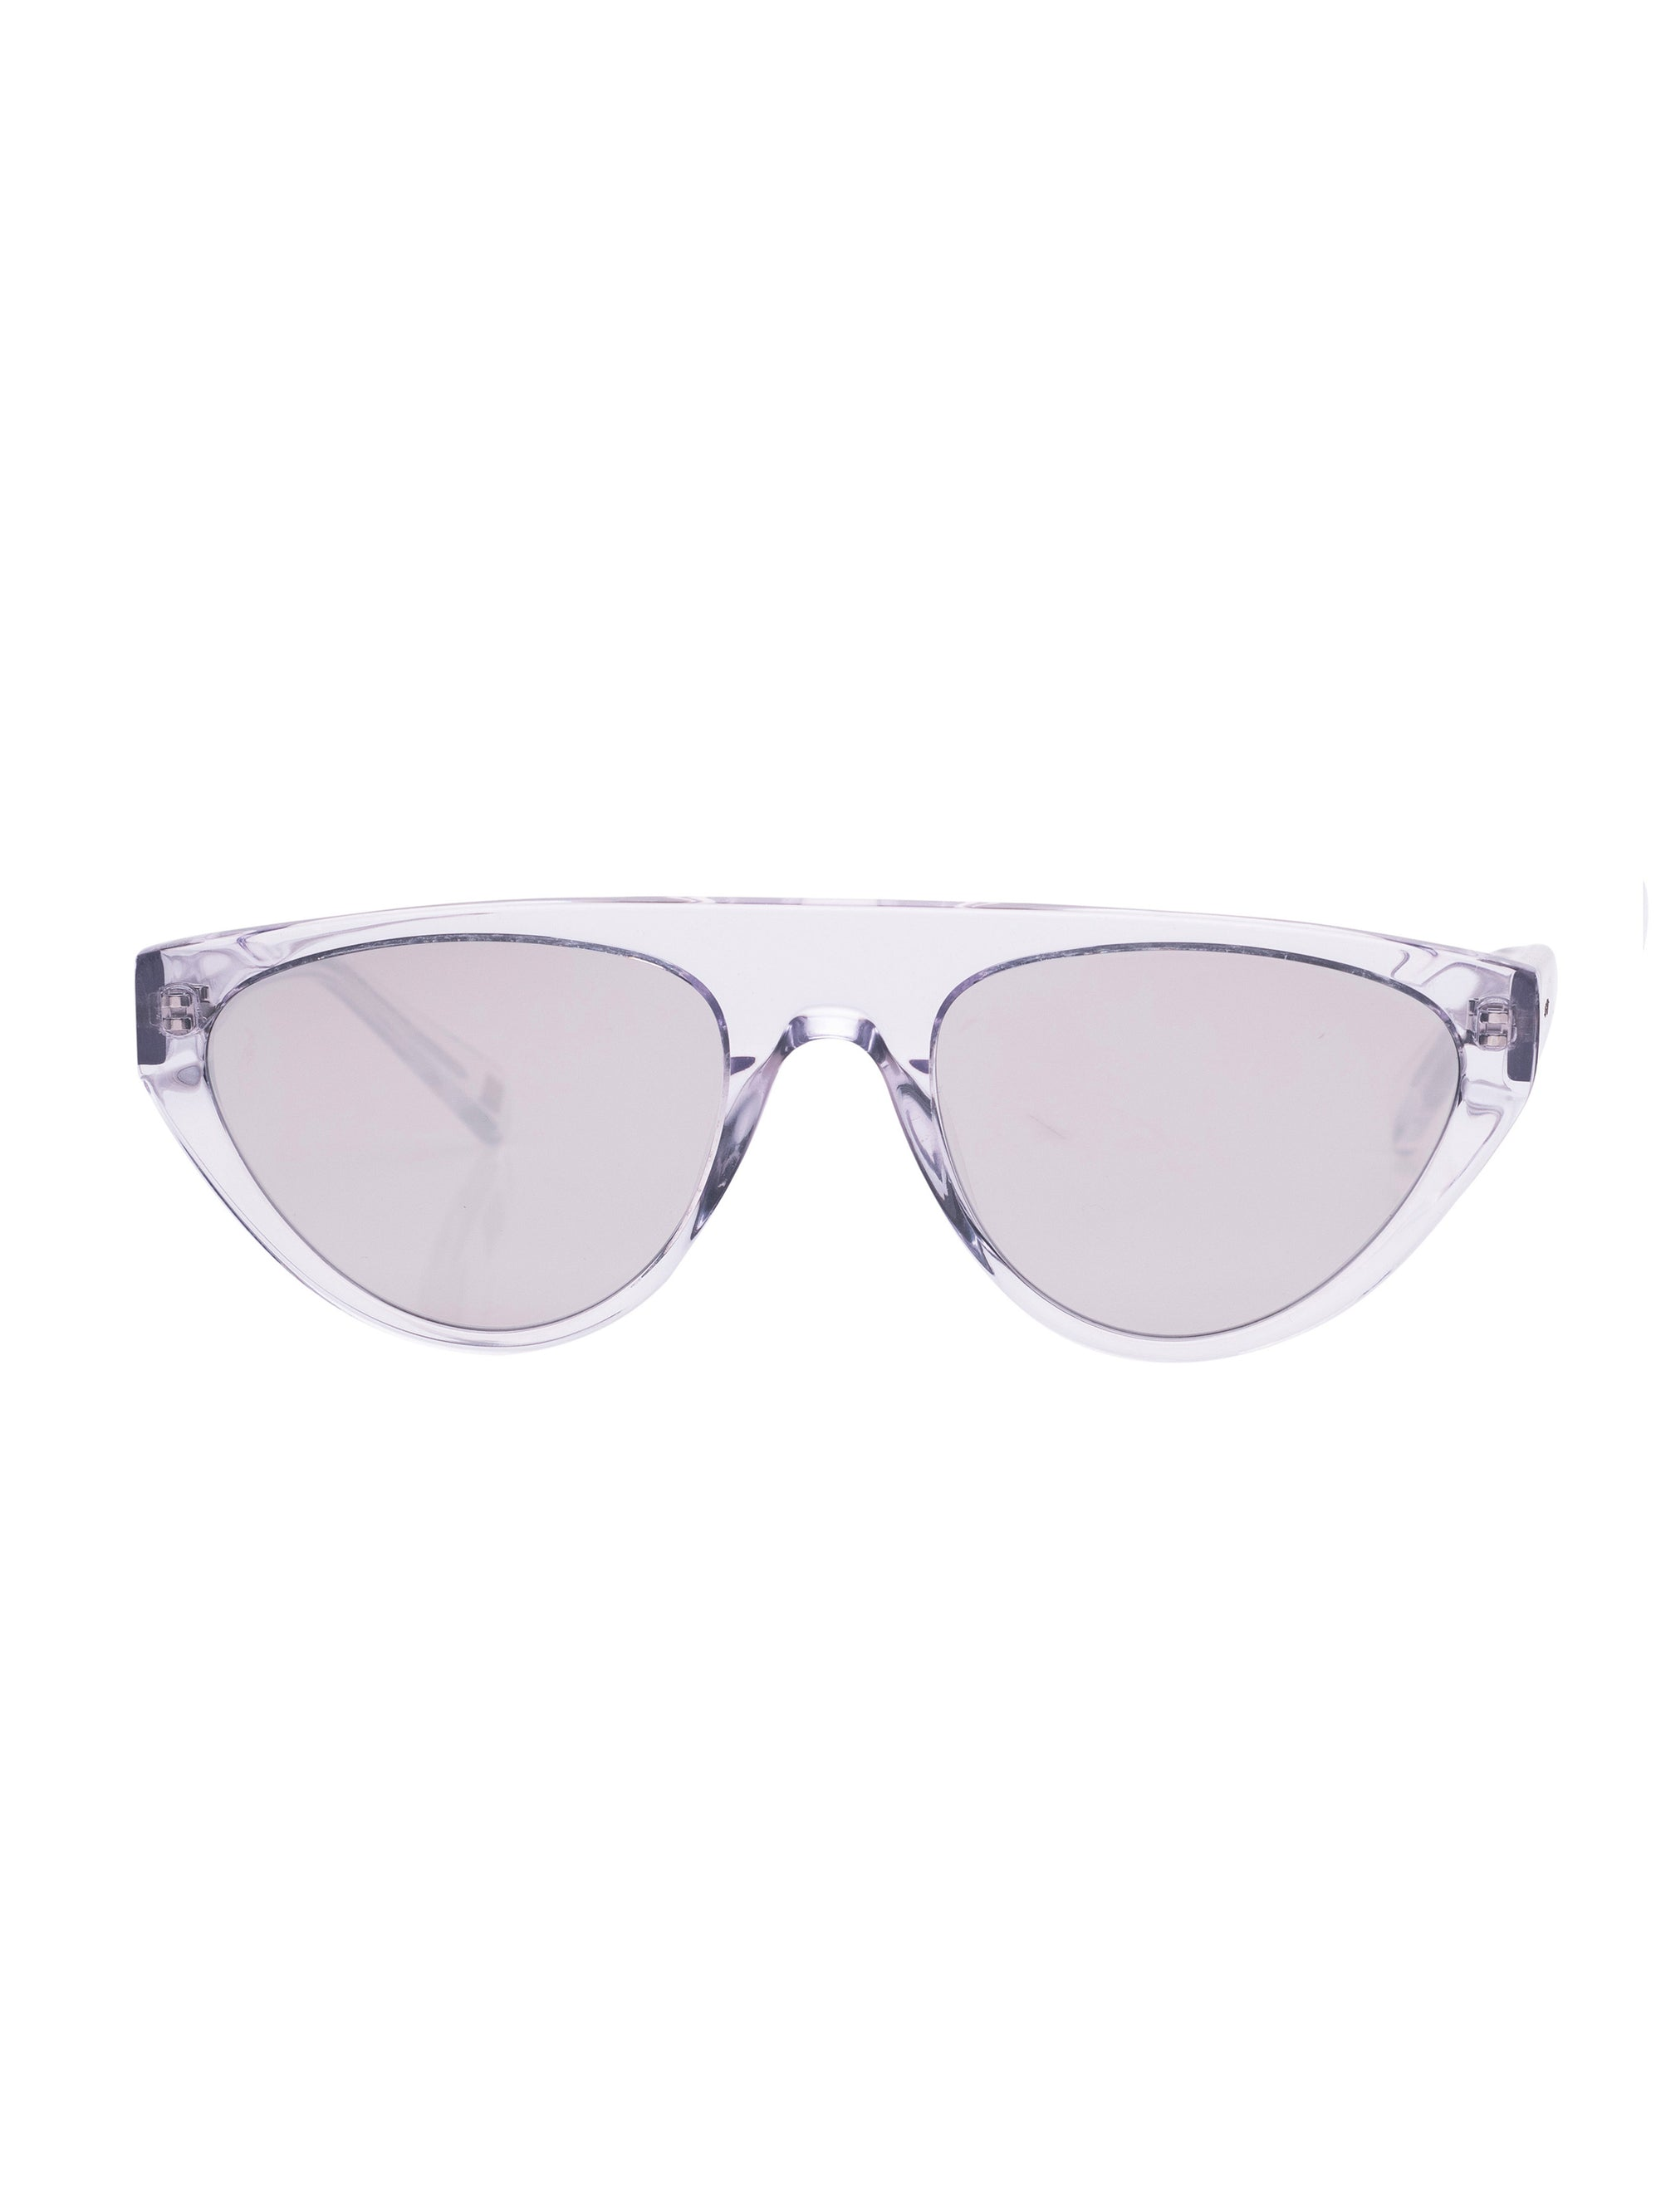 Lentes Carolina Lemke CL7735 04